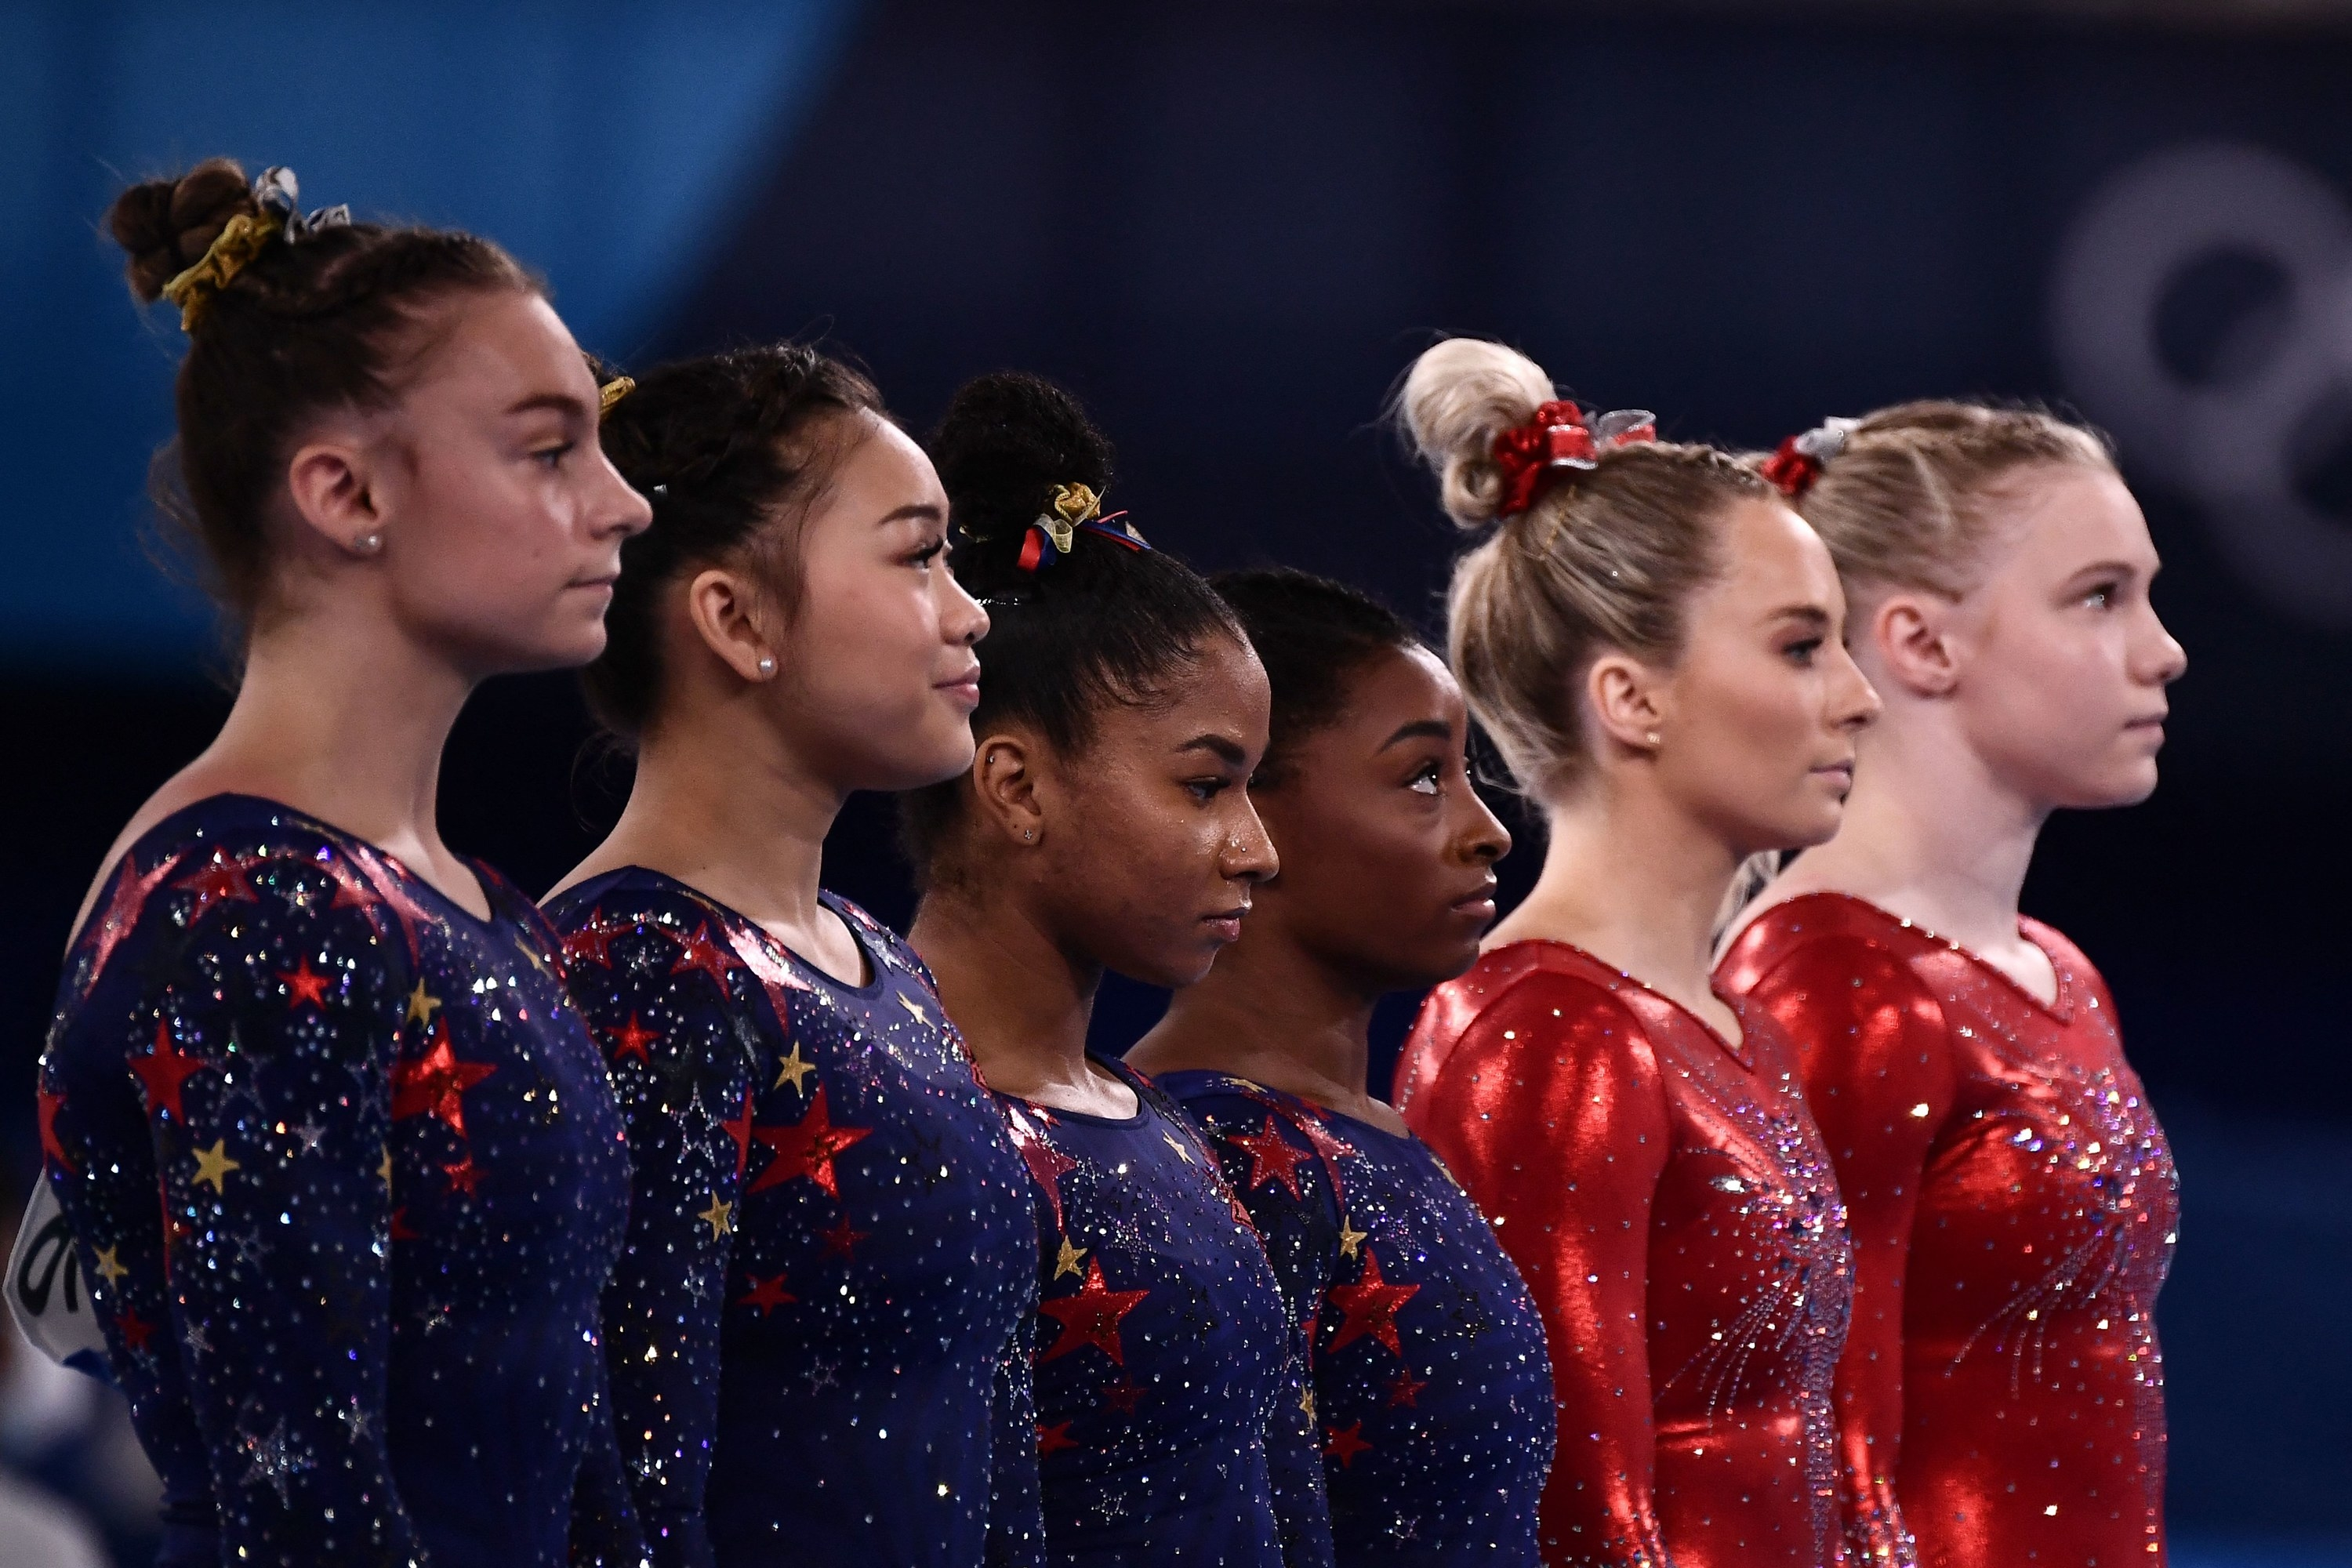 Grace Mc Callum, Sunisa Lee, Jordan Chiles, and Simone Biles are pictured during the qualification rounds at the 2020 Tokyo Olympic Games